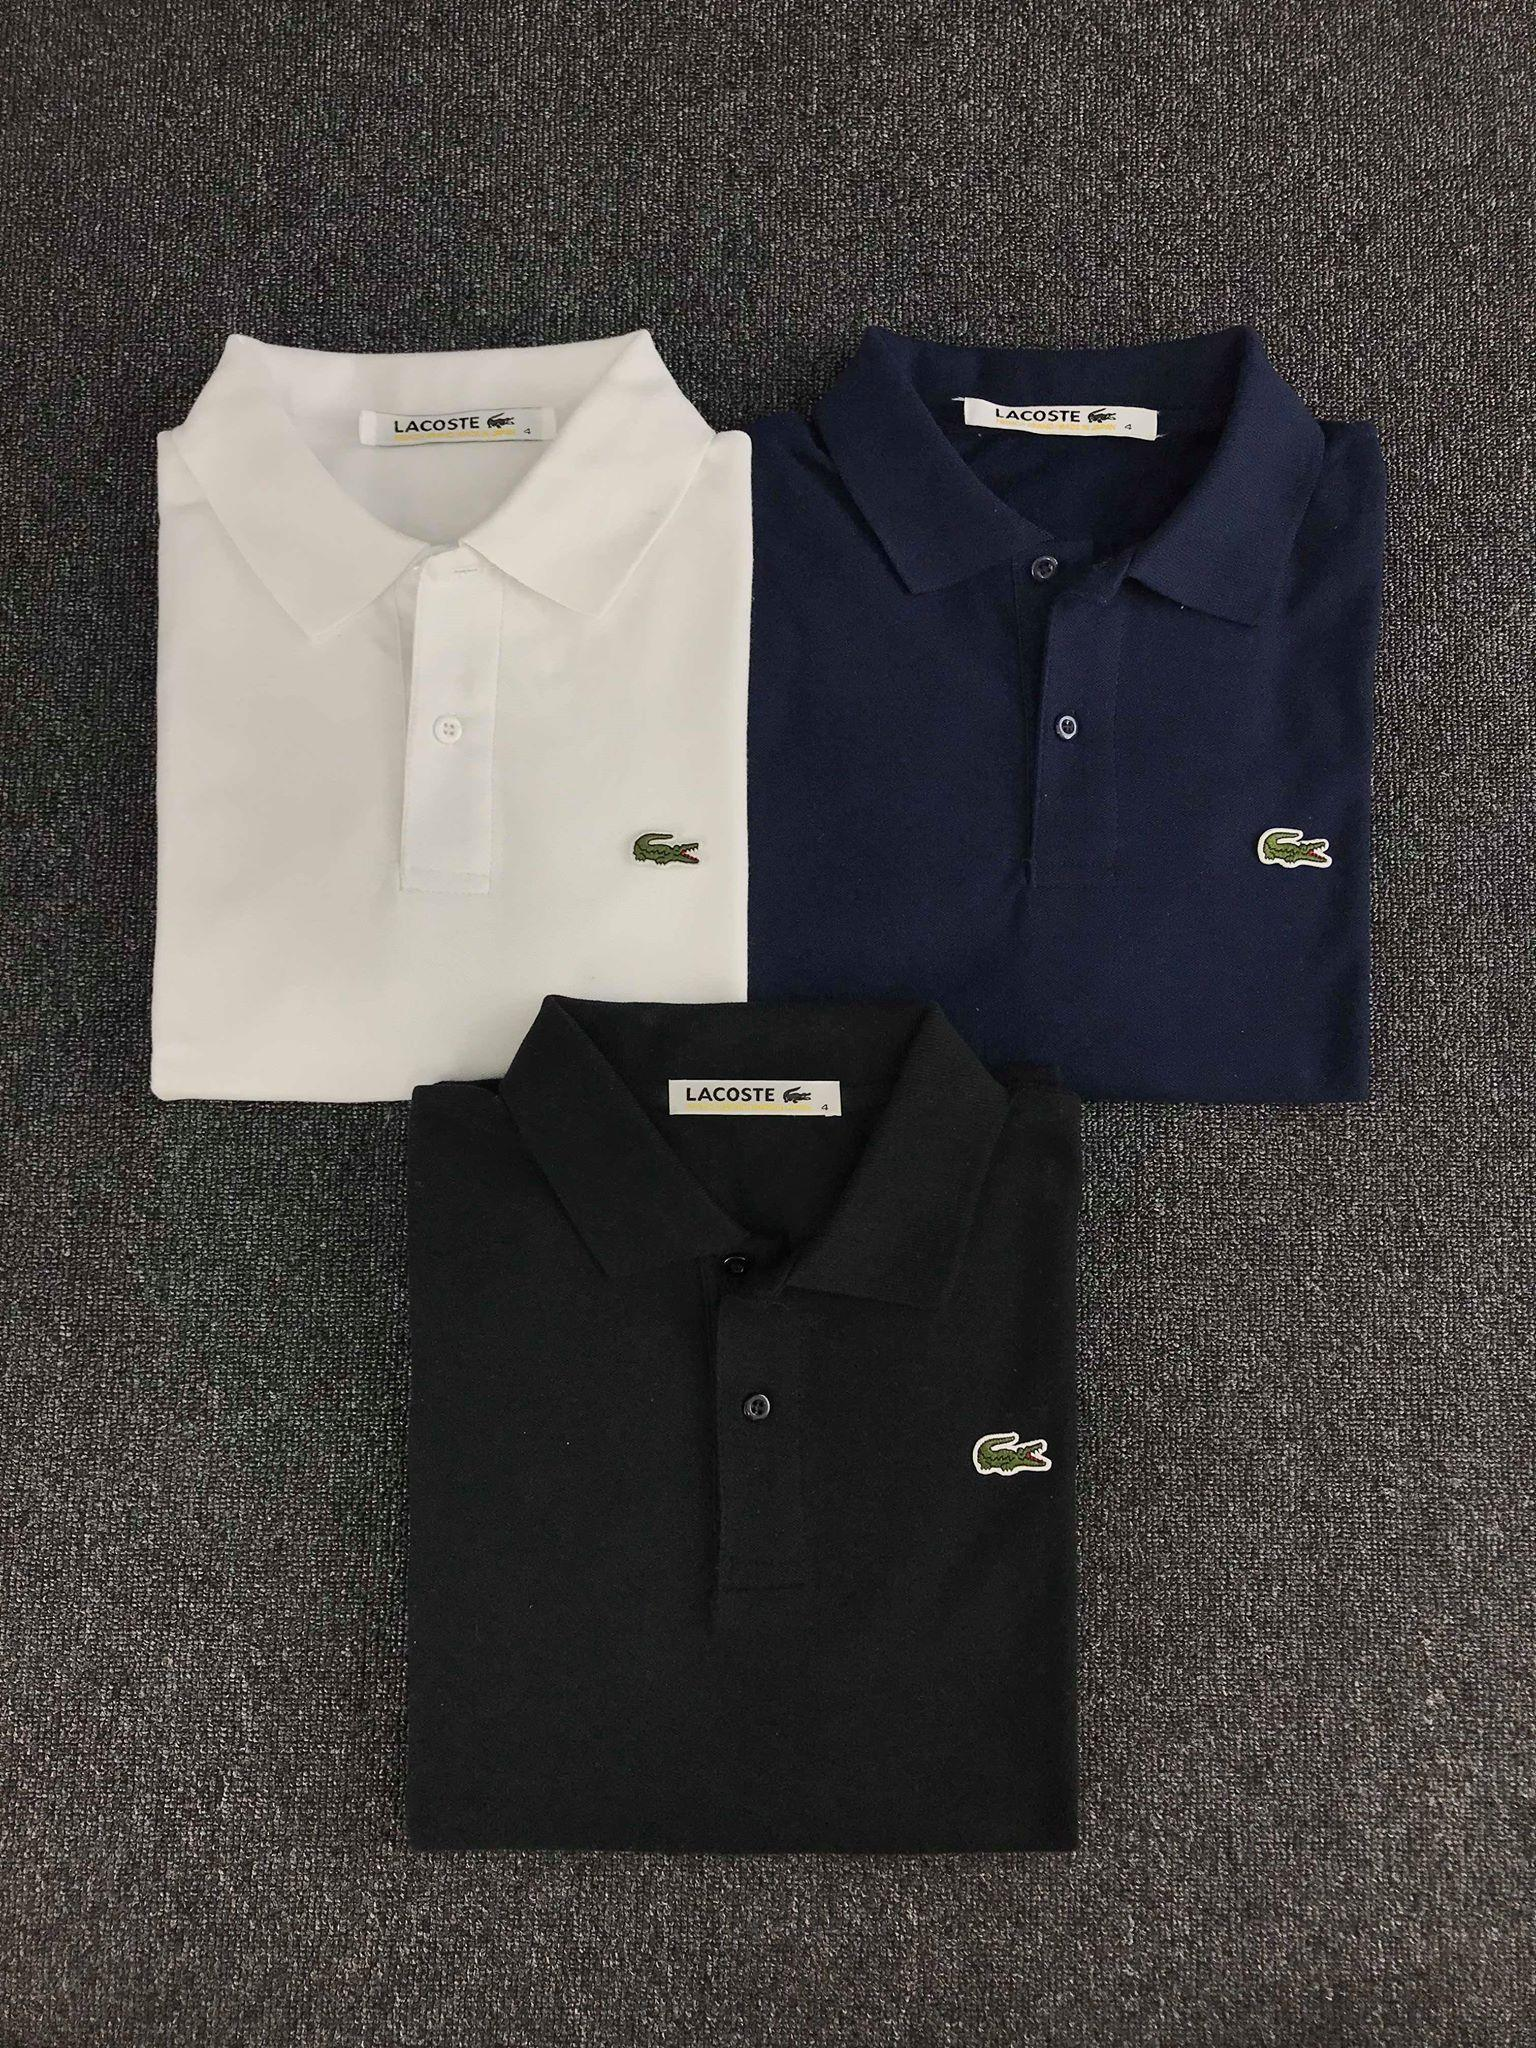 f5e6b4902 Lacoste Philippines - Lacoste Mens Fashion for sale - prices ...